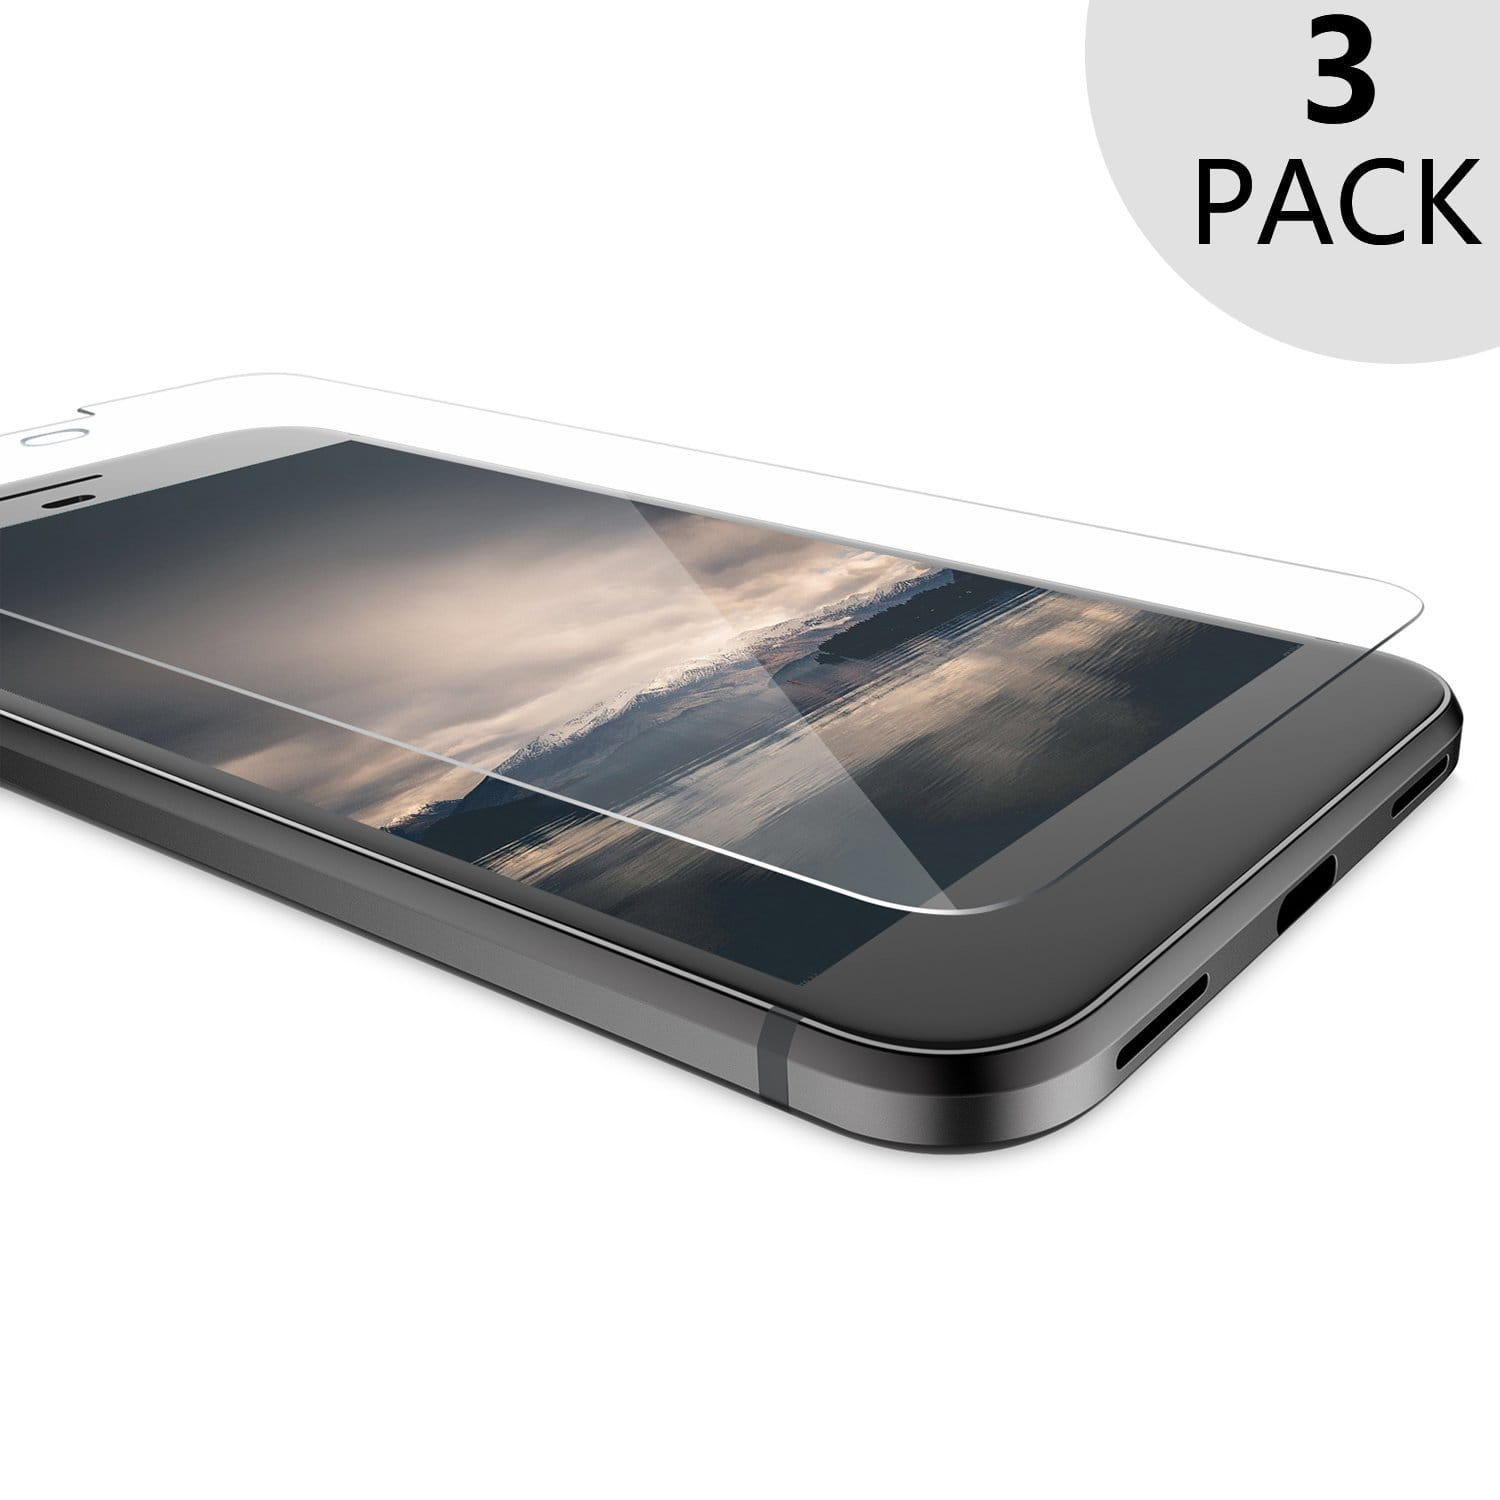 [3 Pack] Google Pixel XL / Google Pixel Tempered Glass Screen Protector- $2.99 fs w/prime